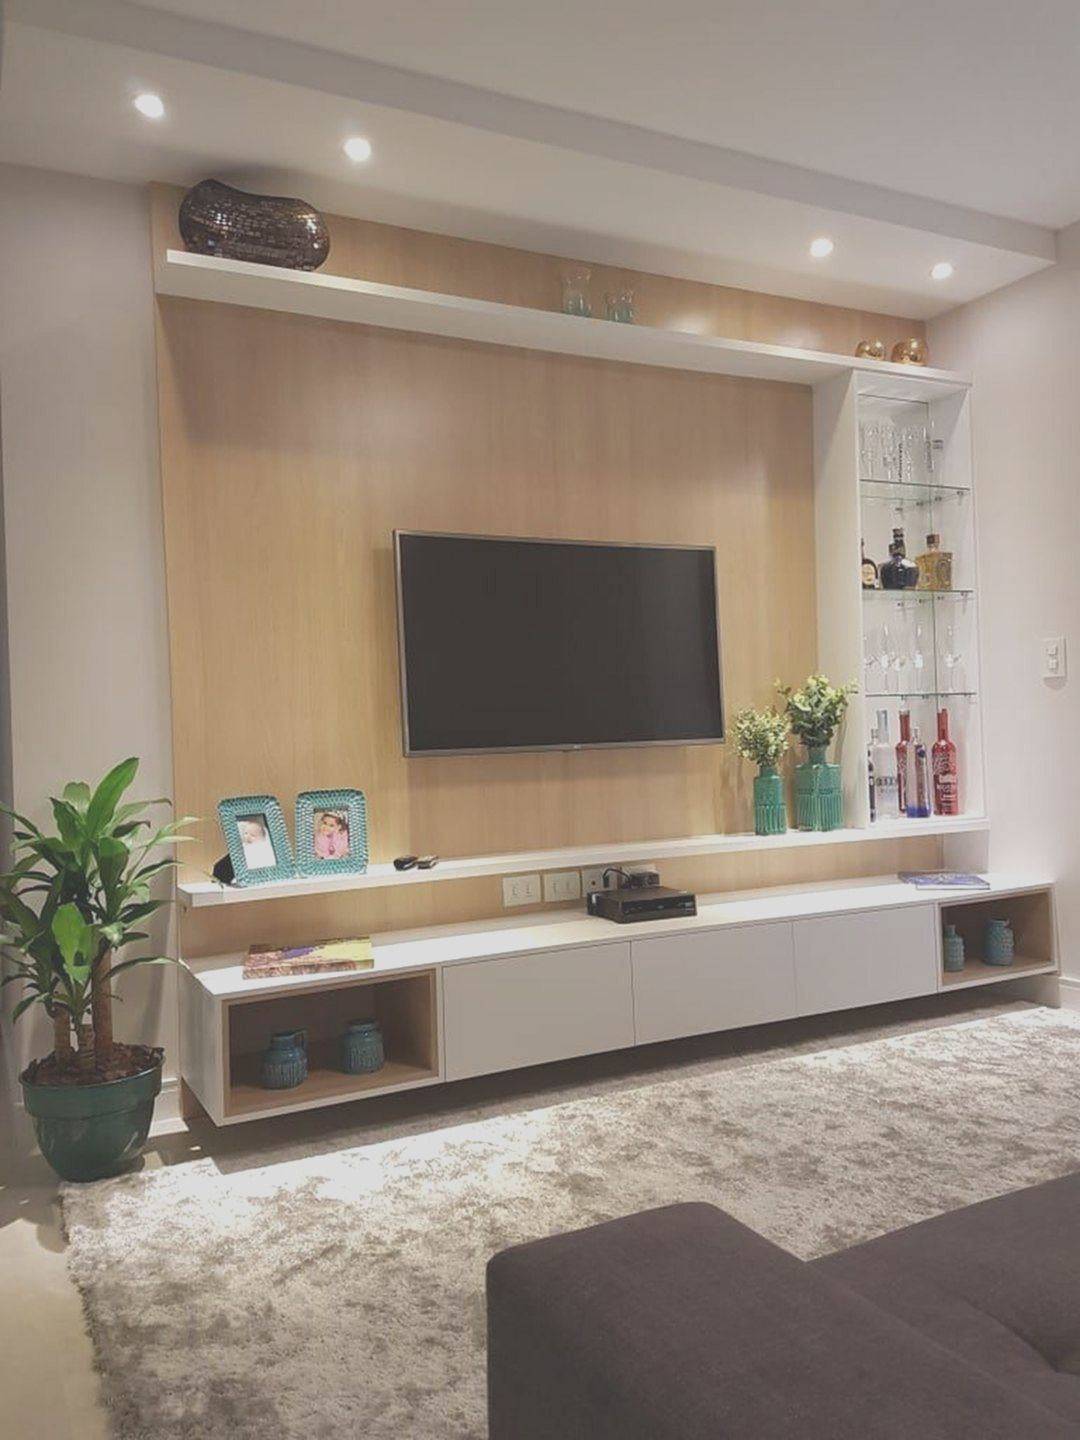 26 Amazing Tv Wall Design Ideas For Living Room Decor In